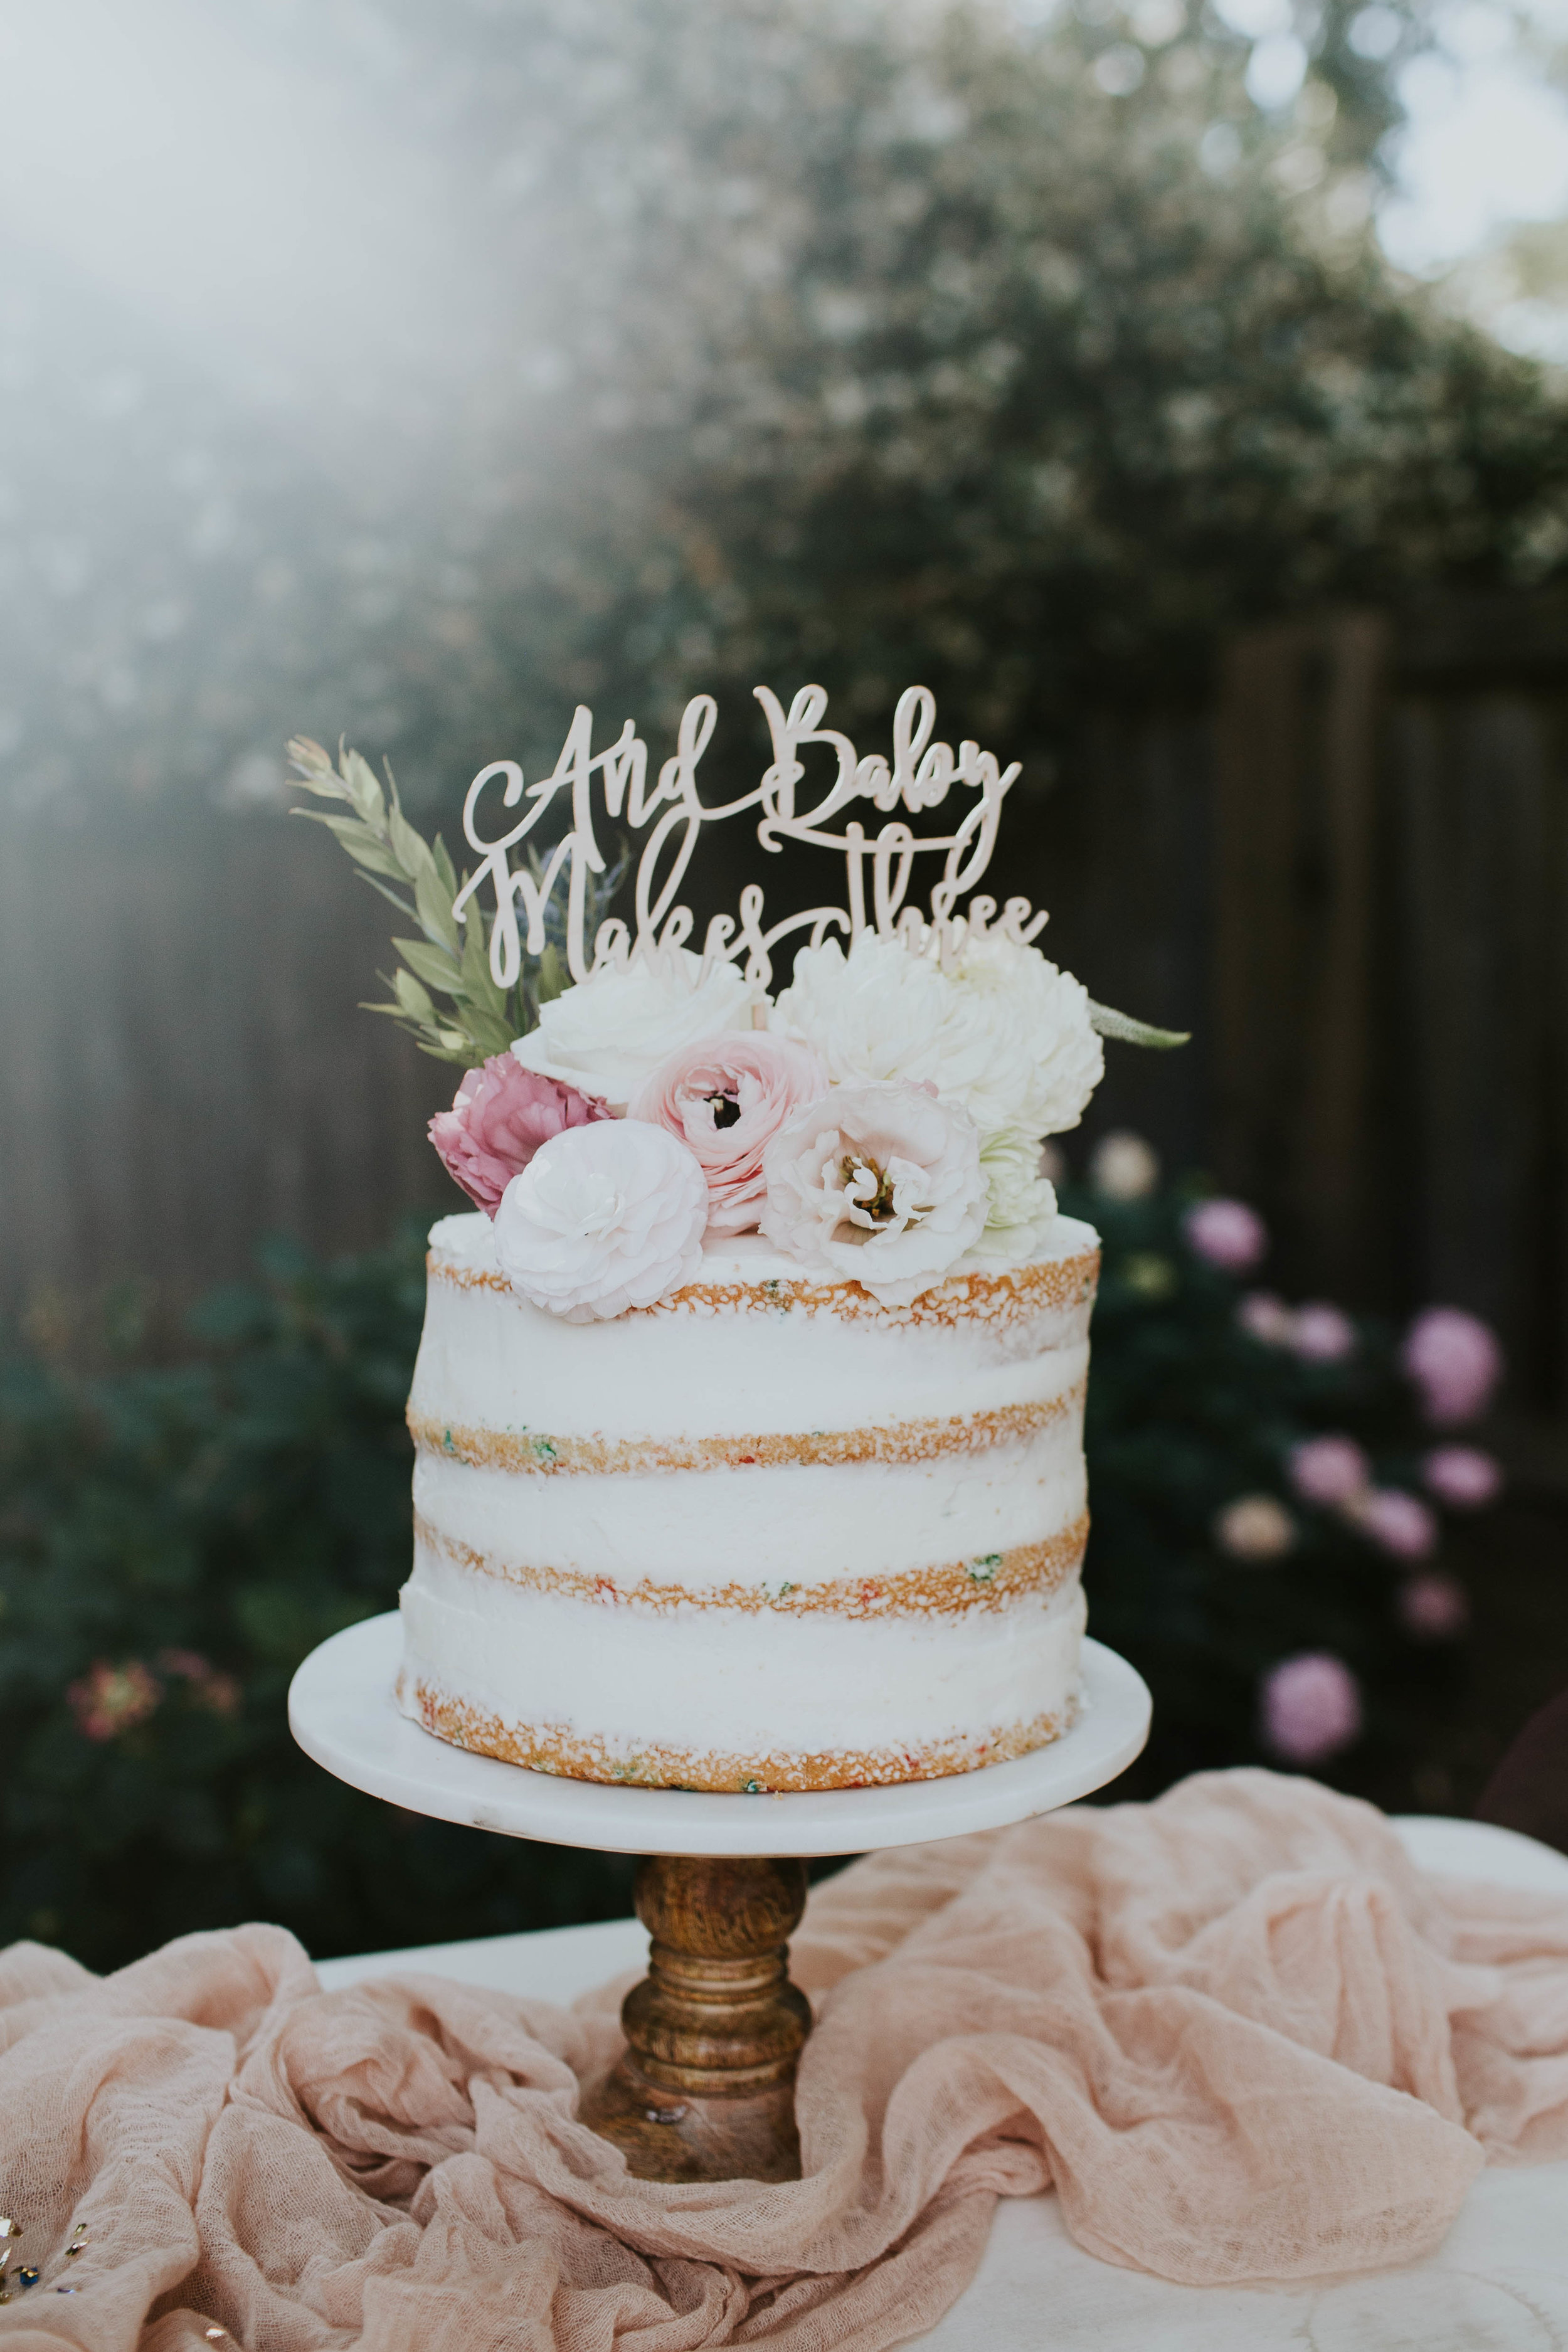   Cake: Sara Fisher - Messy Muffin   Topper: MidnightConfetti on Etsy   Photo:Amie Soares Photography   Design: Ribbon & leaf Events  